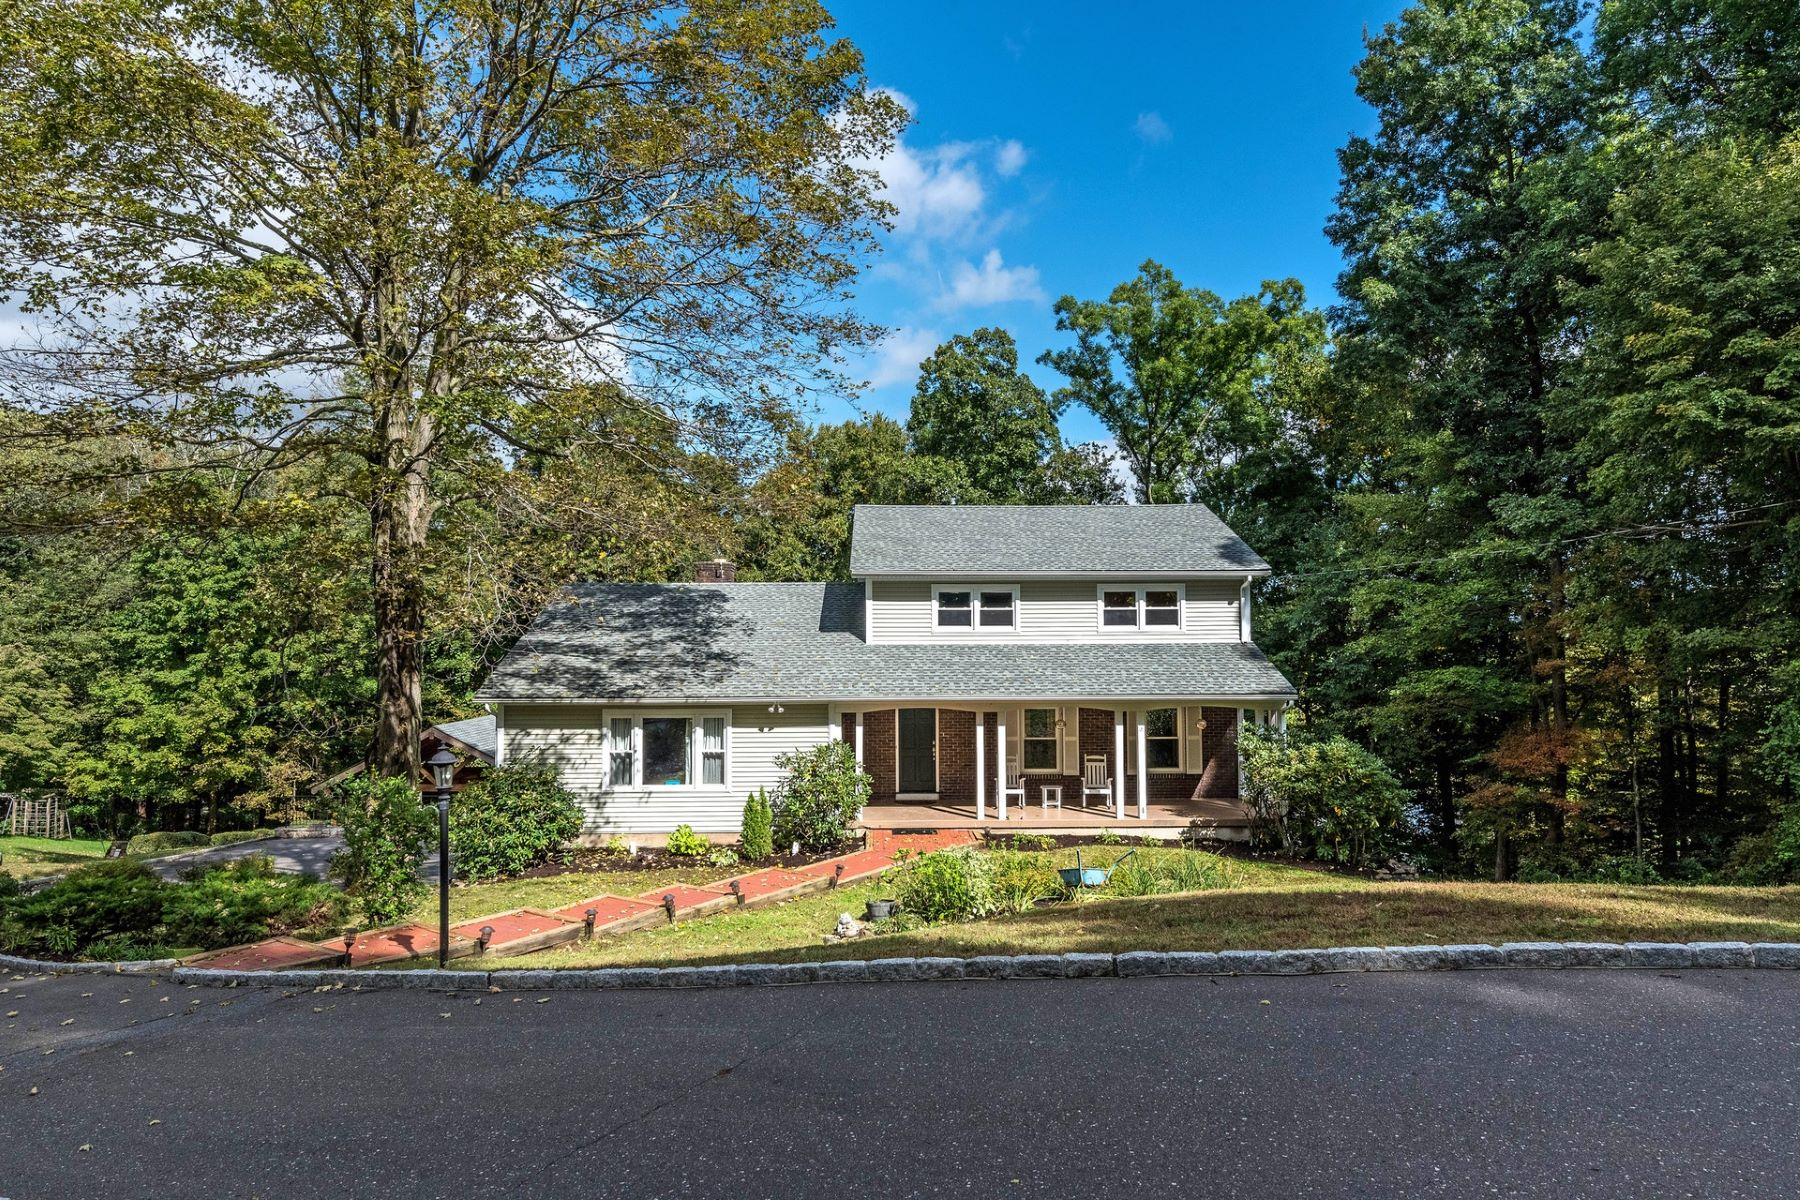 Single Family Home for Sale at Updated Colonial in Desirable Neighborhood 44 Fairmount Dr Danbury, Connecticut 06811 United States